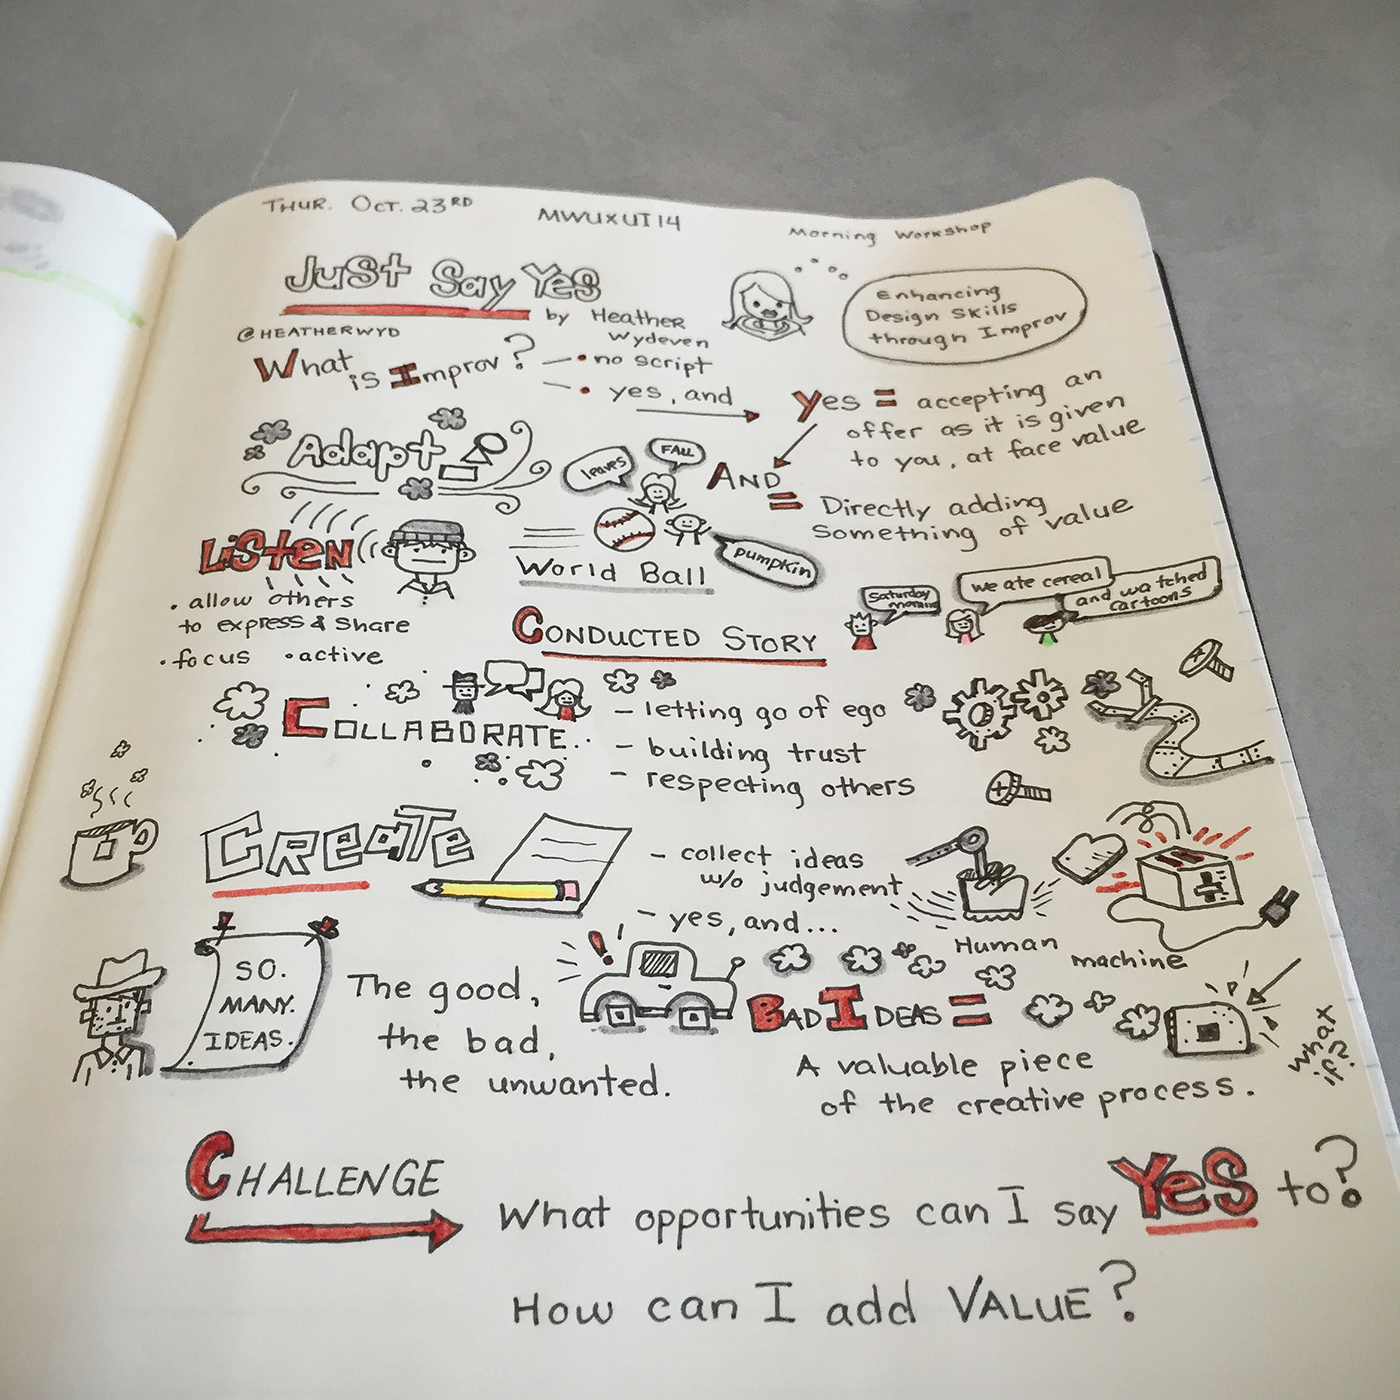 sketch notes from MWUX2014 - Just say yes